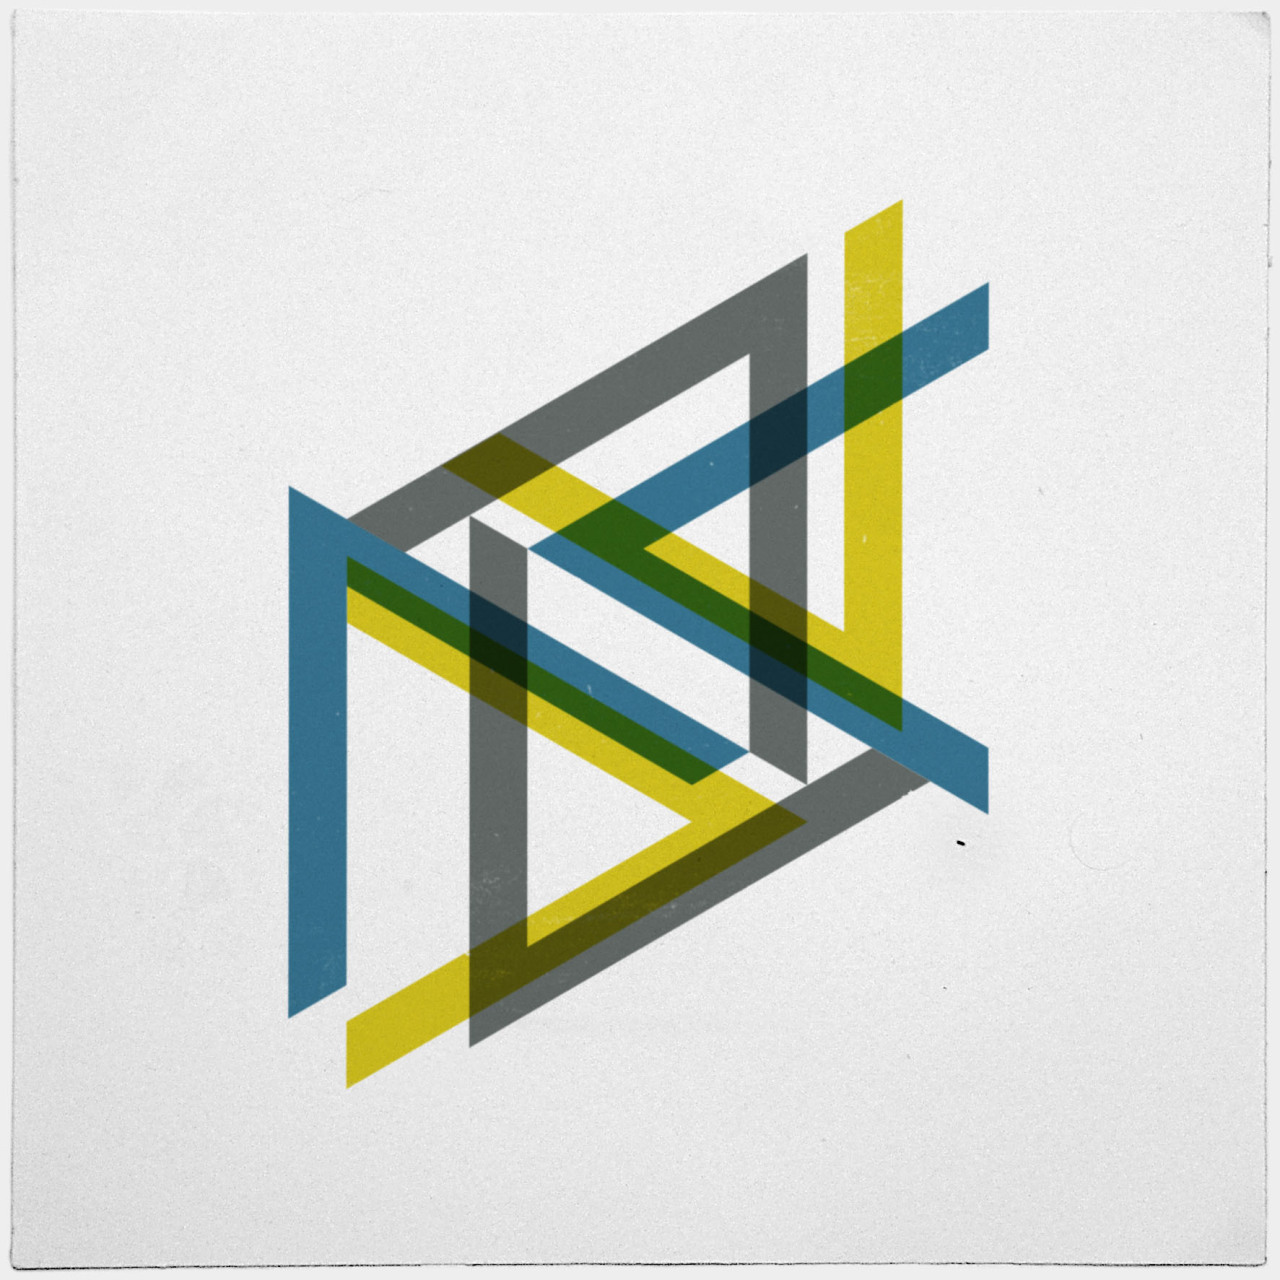 geometrydaily:  #443 Indecisions – A new minimal geometric composition each day